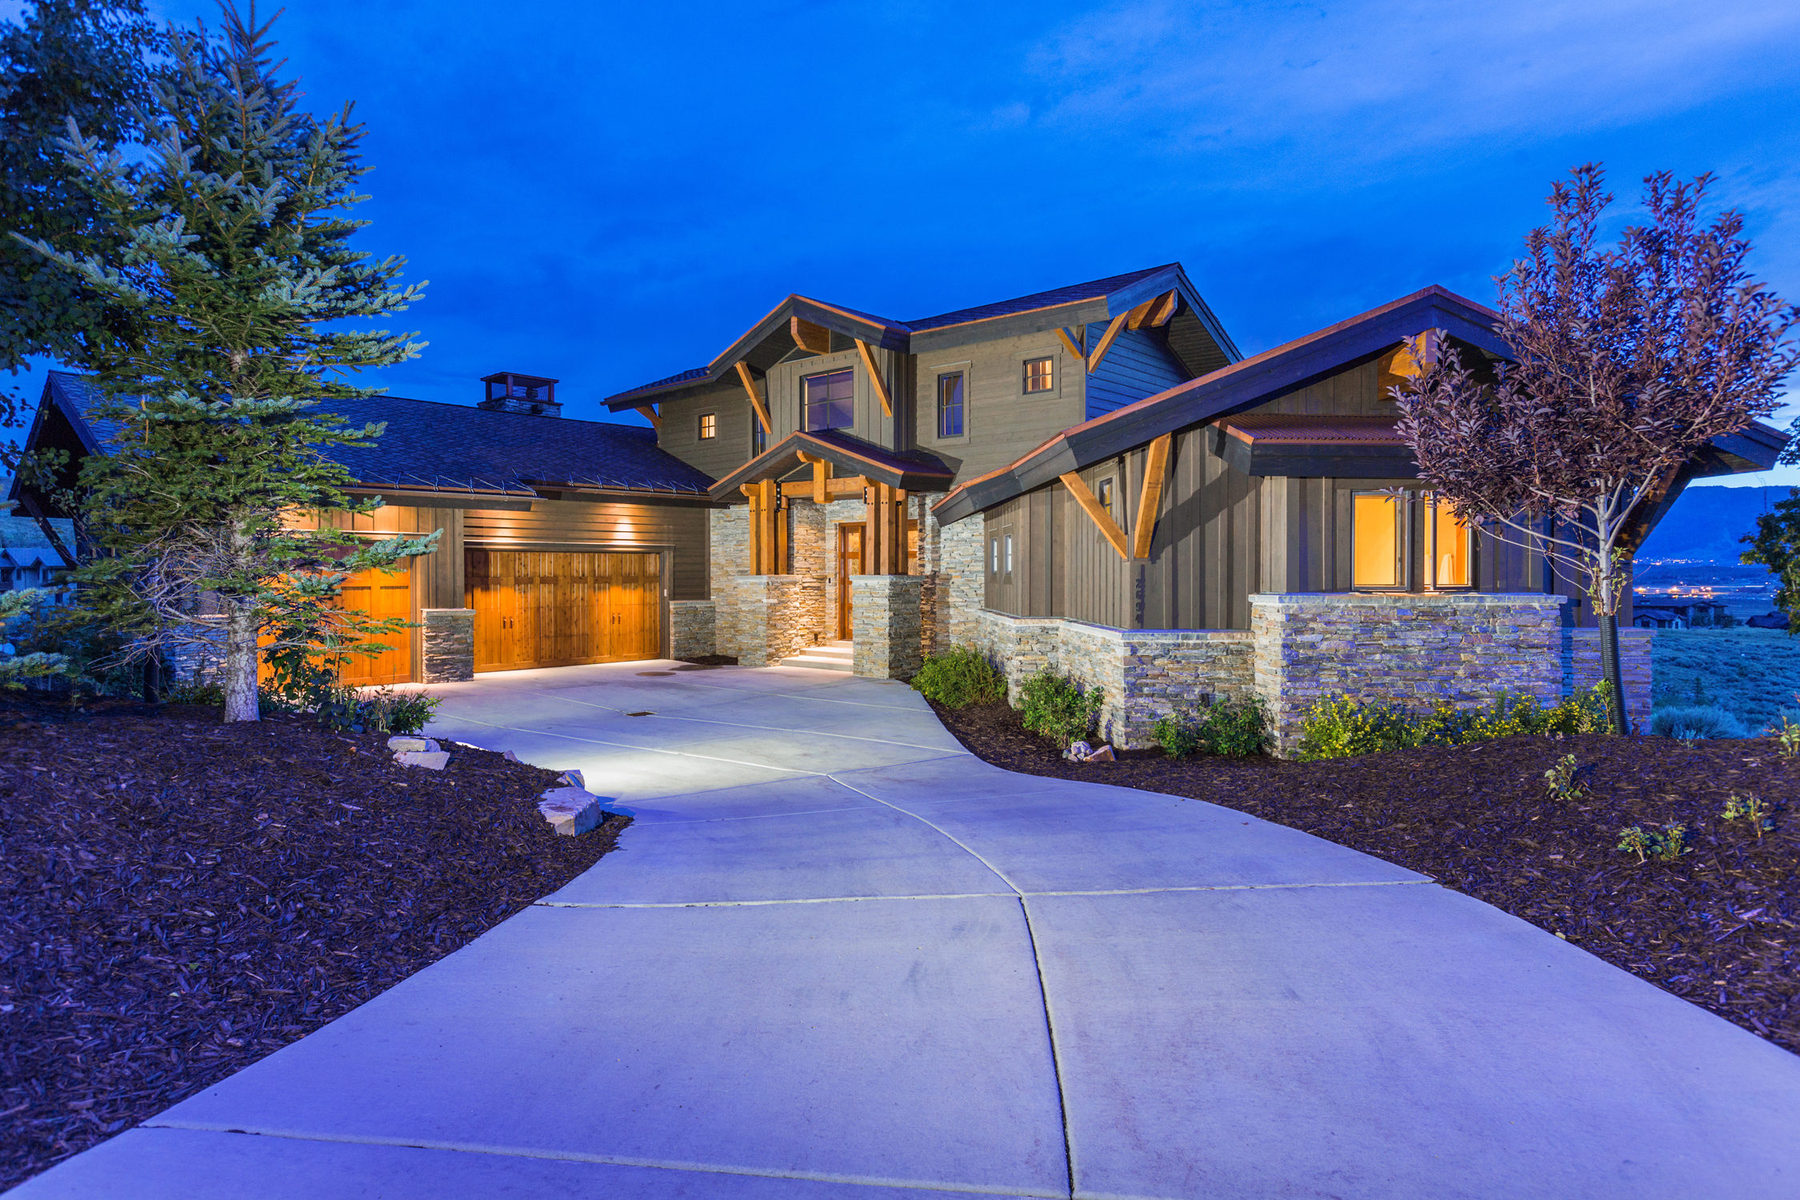 Single Family Home for Sale at Showcase Home with Panoramic Ski Views 2694 E Westview Trail Park City, Utah 84098 United States